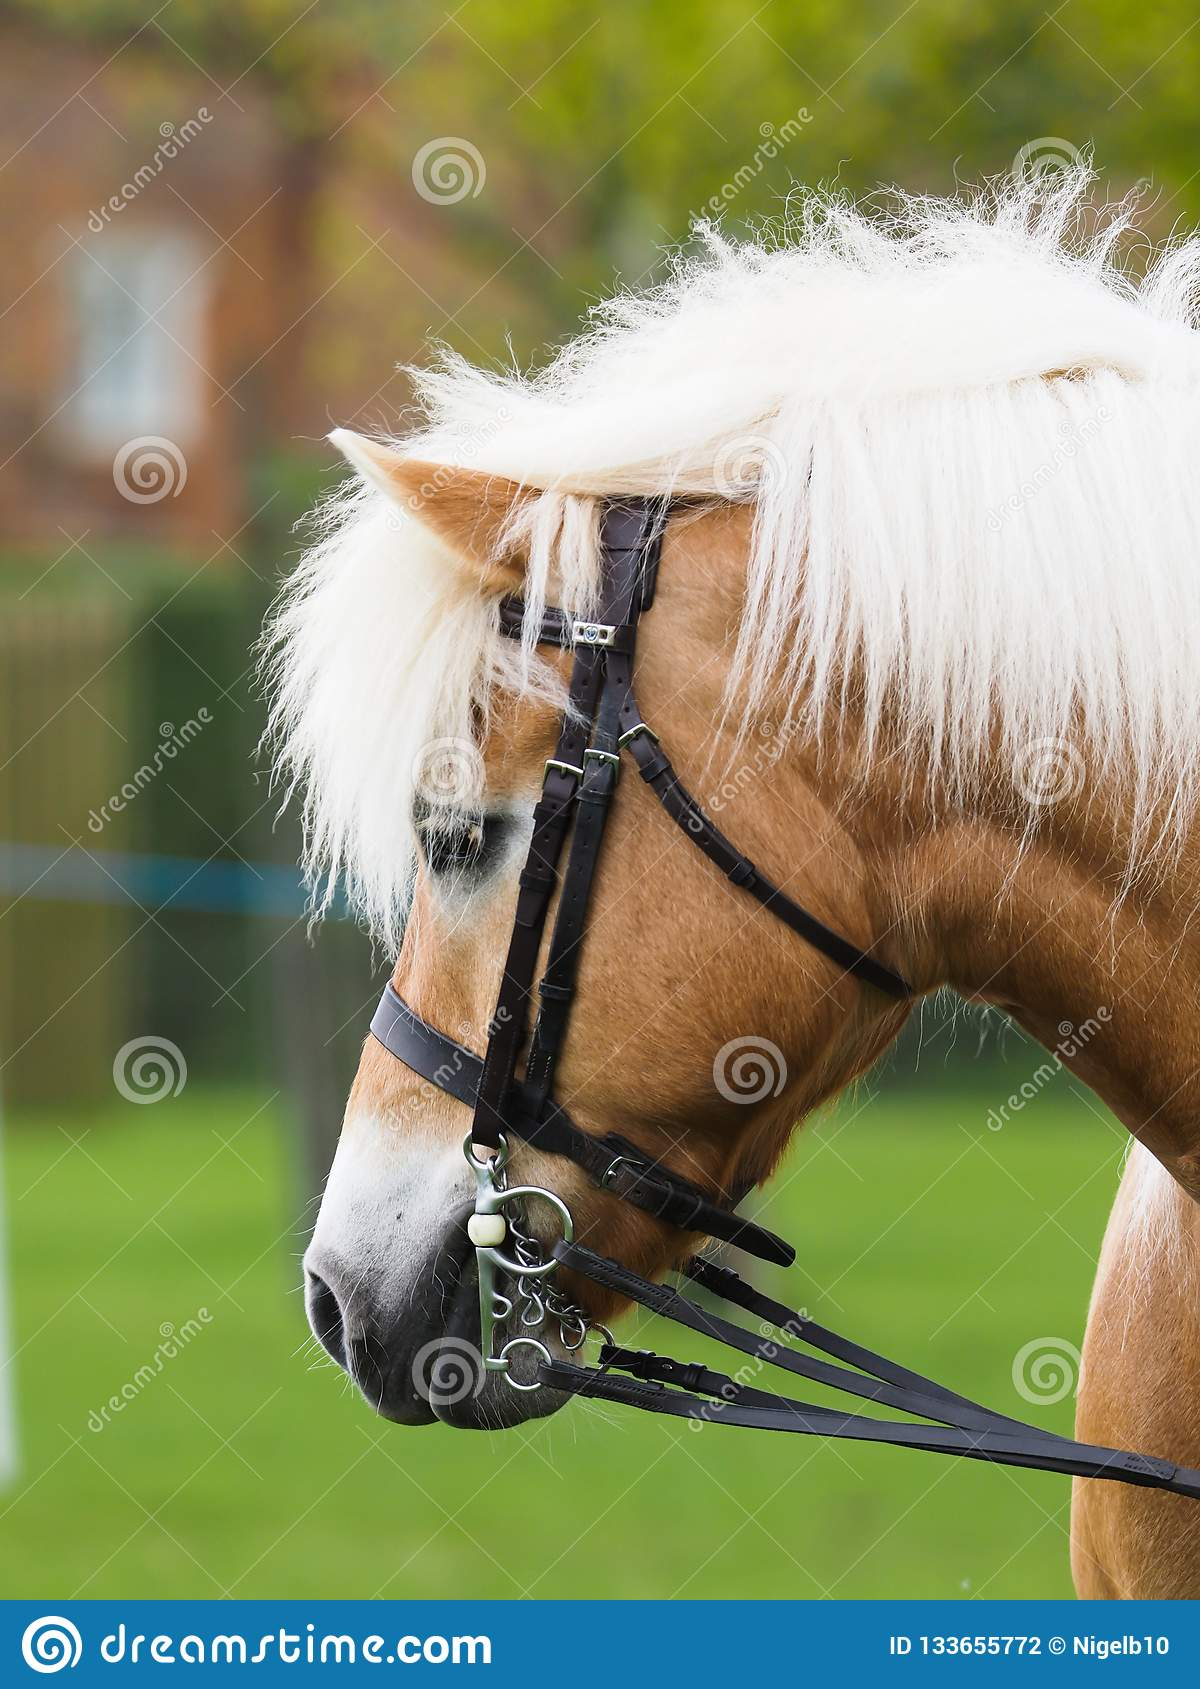 Horse Head Shot stock photo. Image of outdoors, equestrian ...